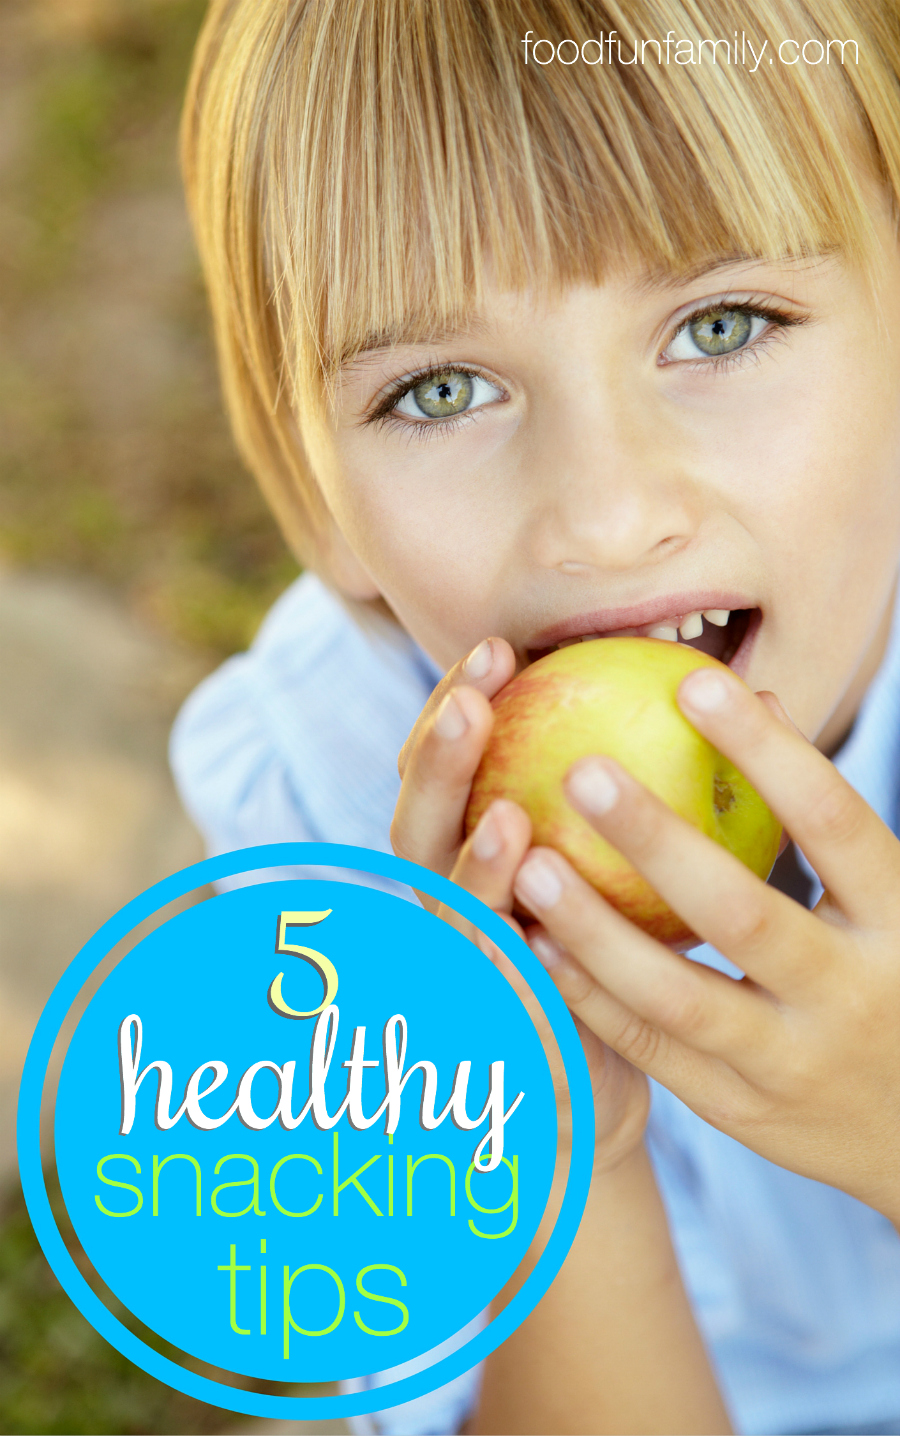 5 Healthy snacking tips for kids and parents